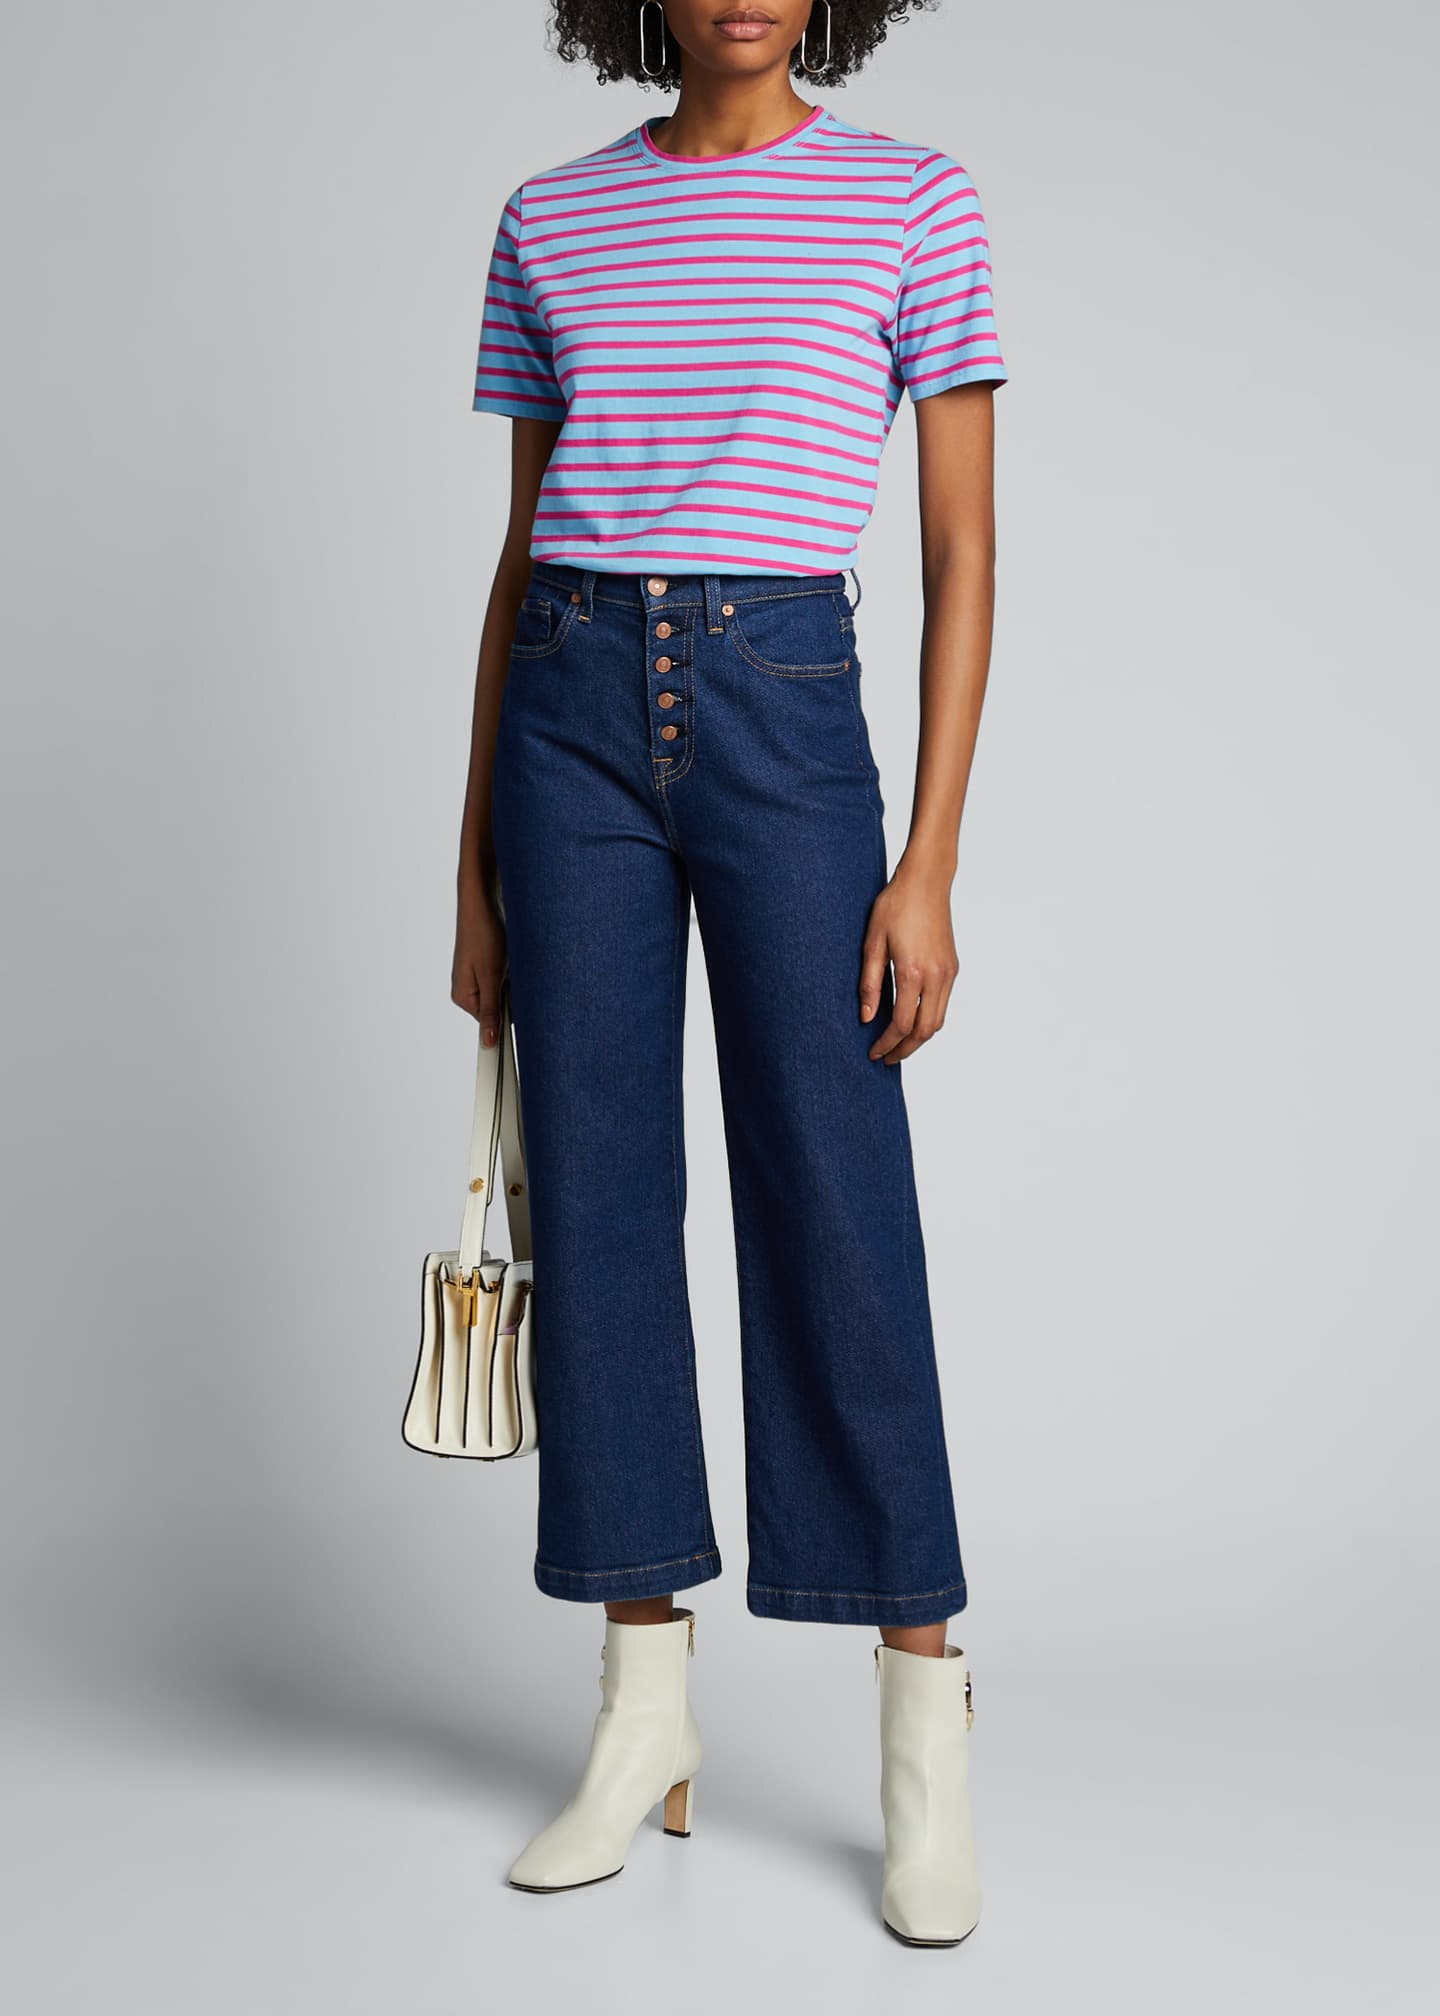 Image 1 of 5: The Modern Short-Sleeve Striped Top